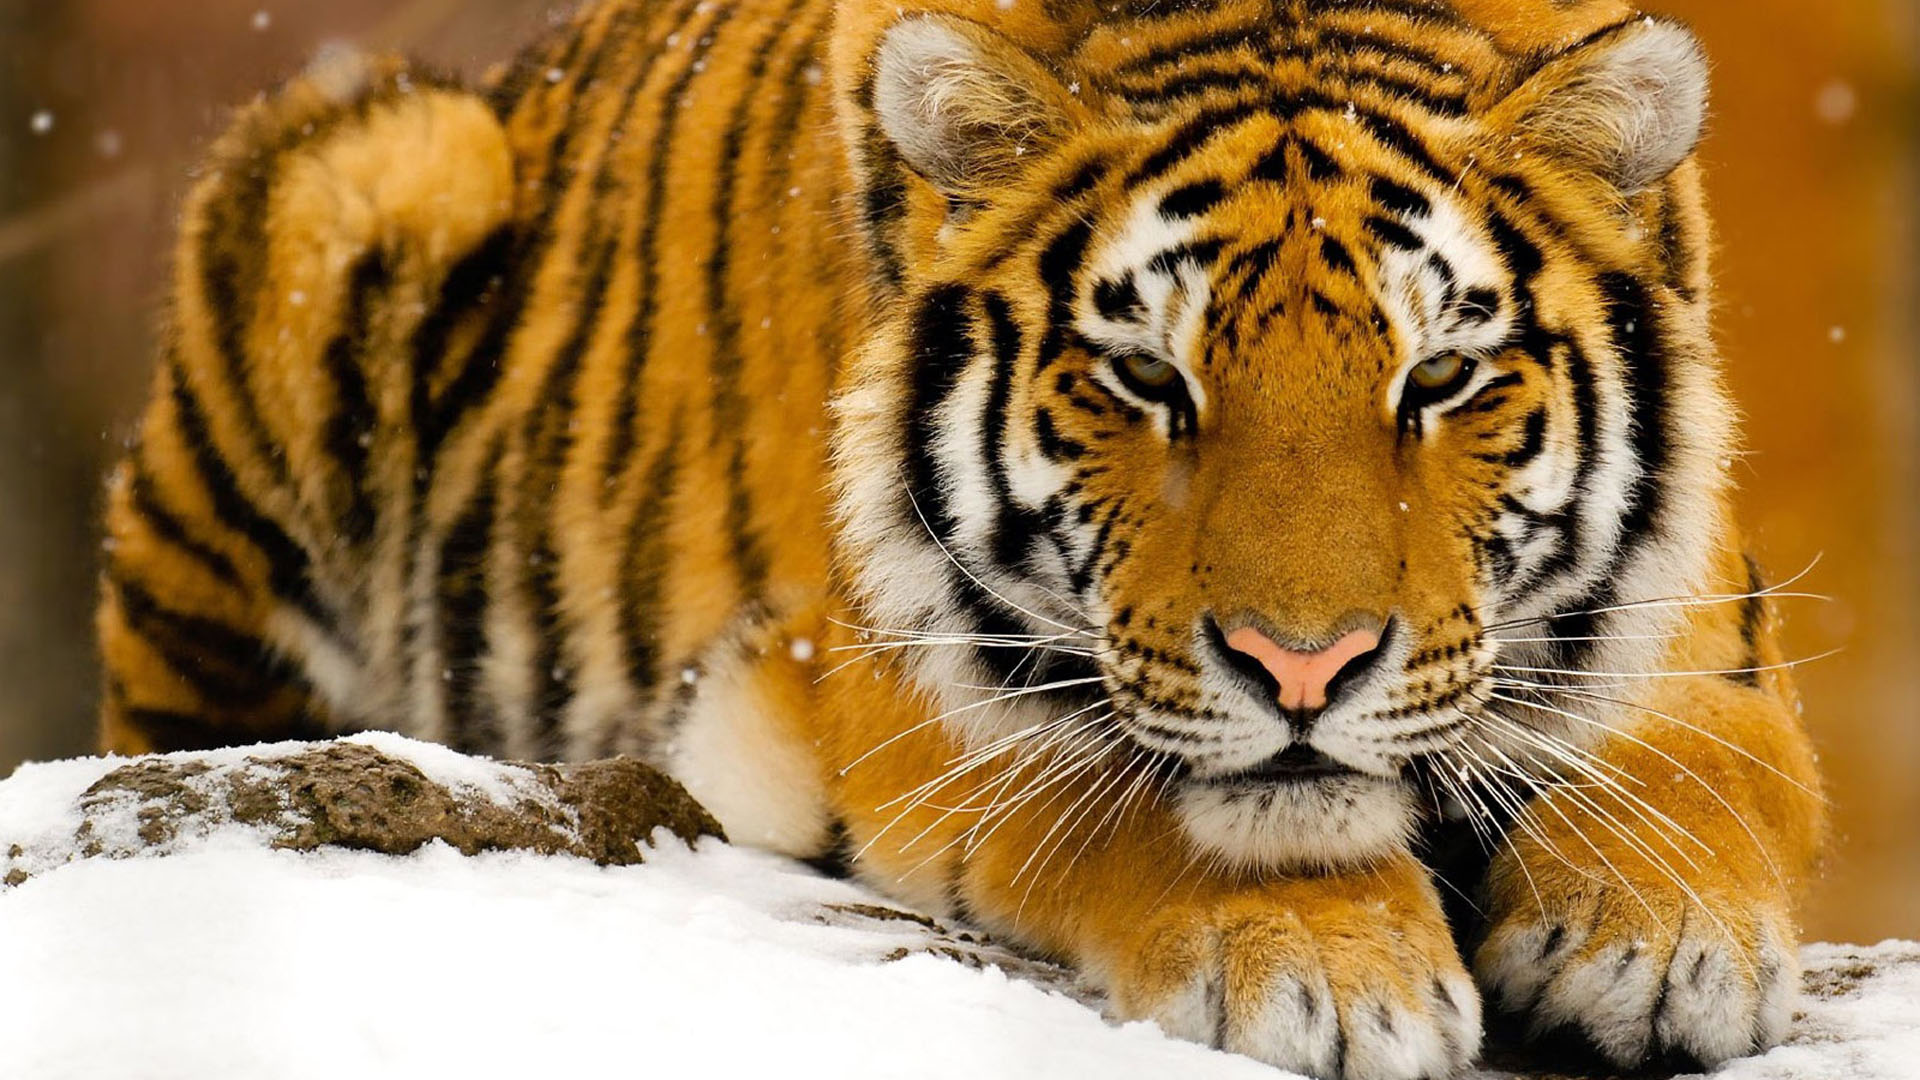 27279 Tiger wallpapers hd